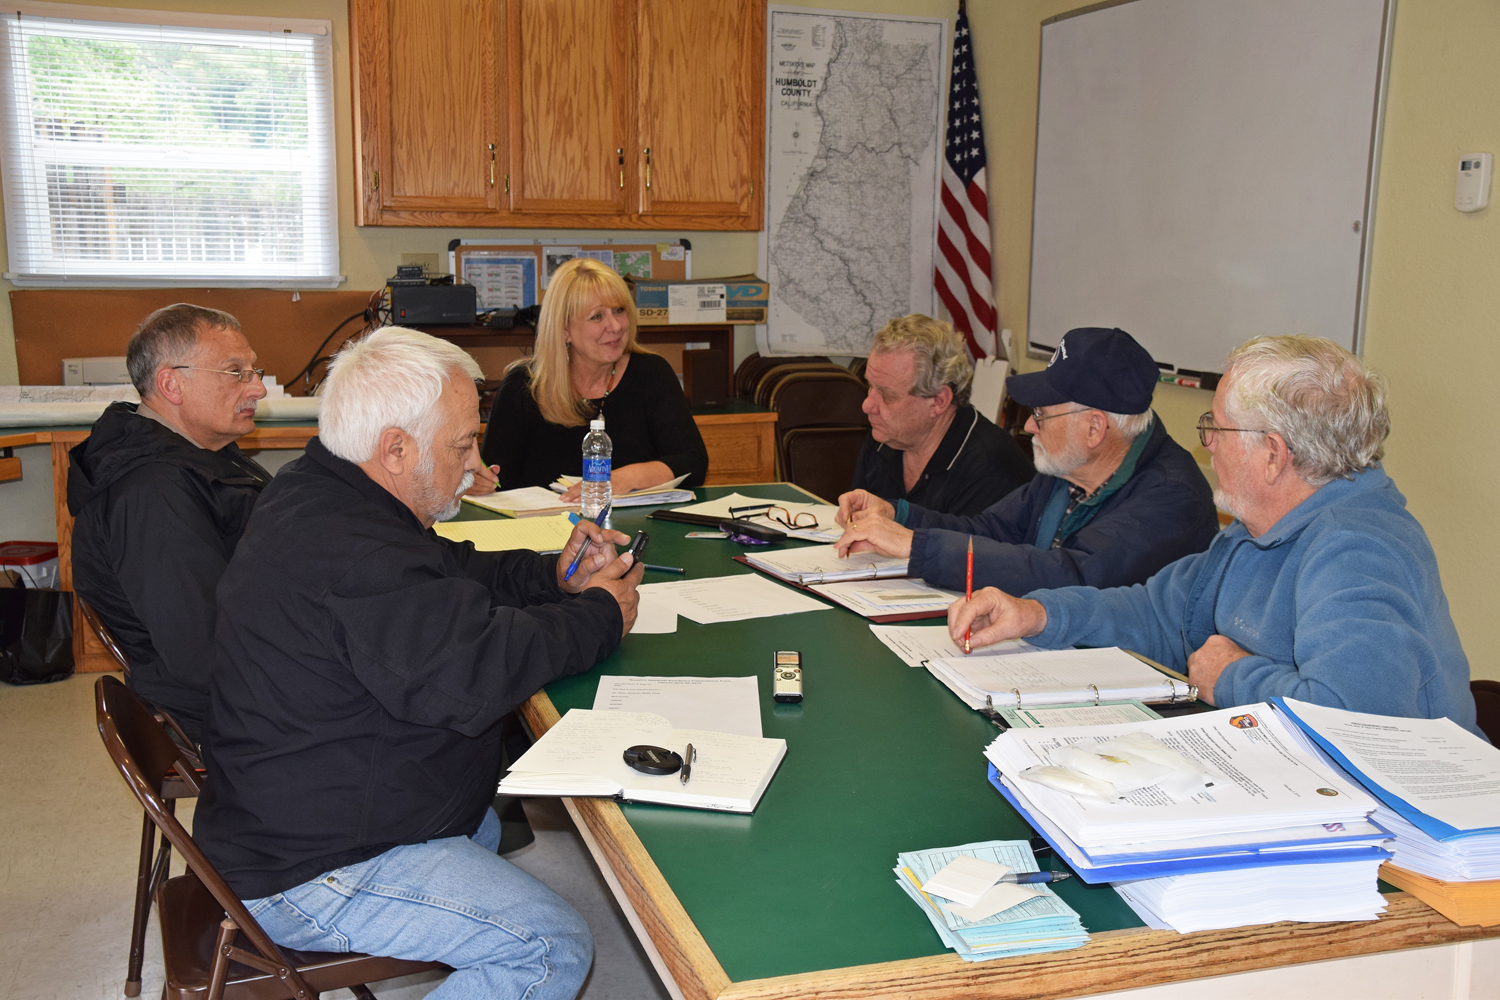 Members of the Southern Humboldt Emergency Preparedness Team met on April 22. (Sandy Feretto)